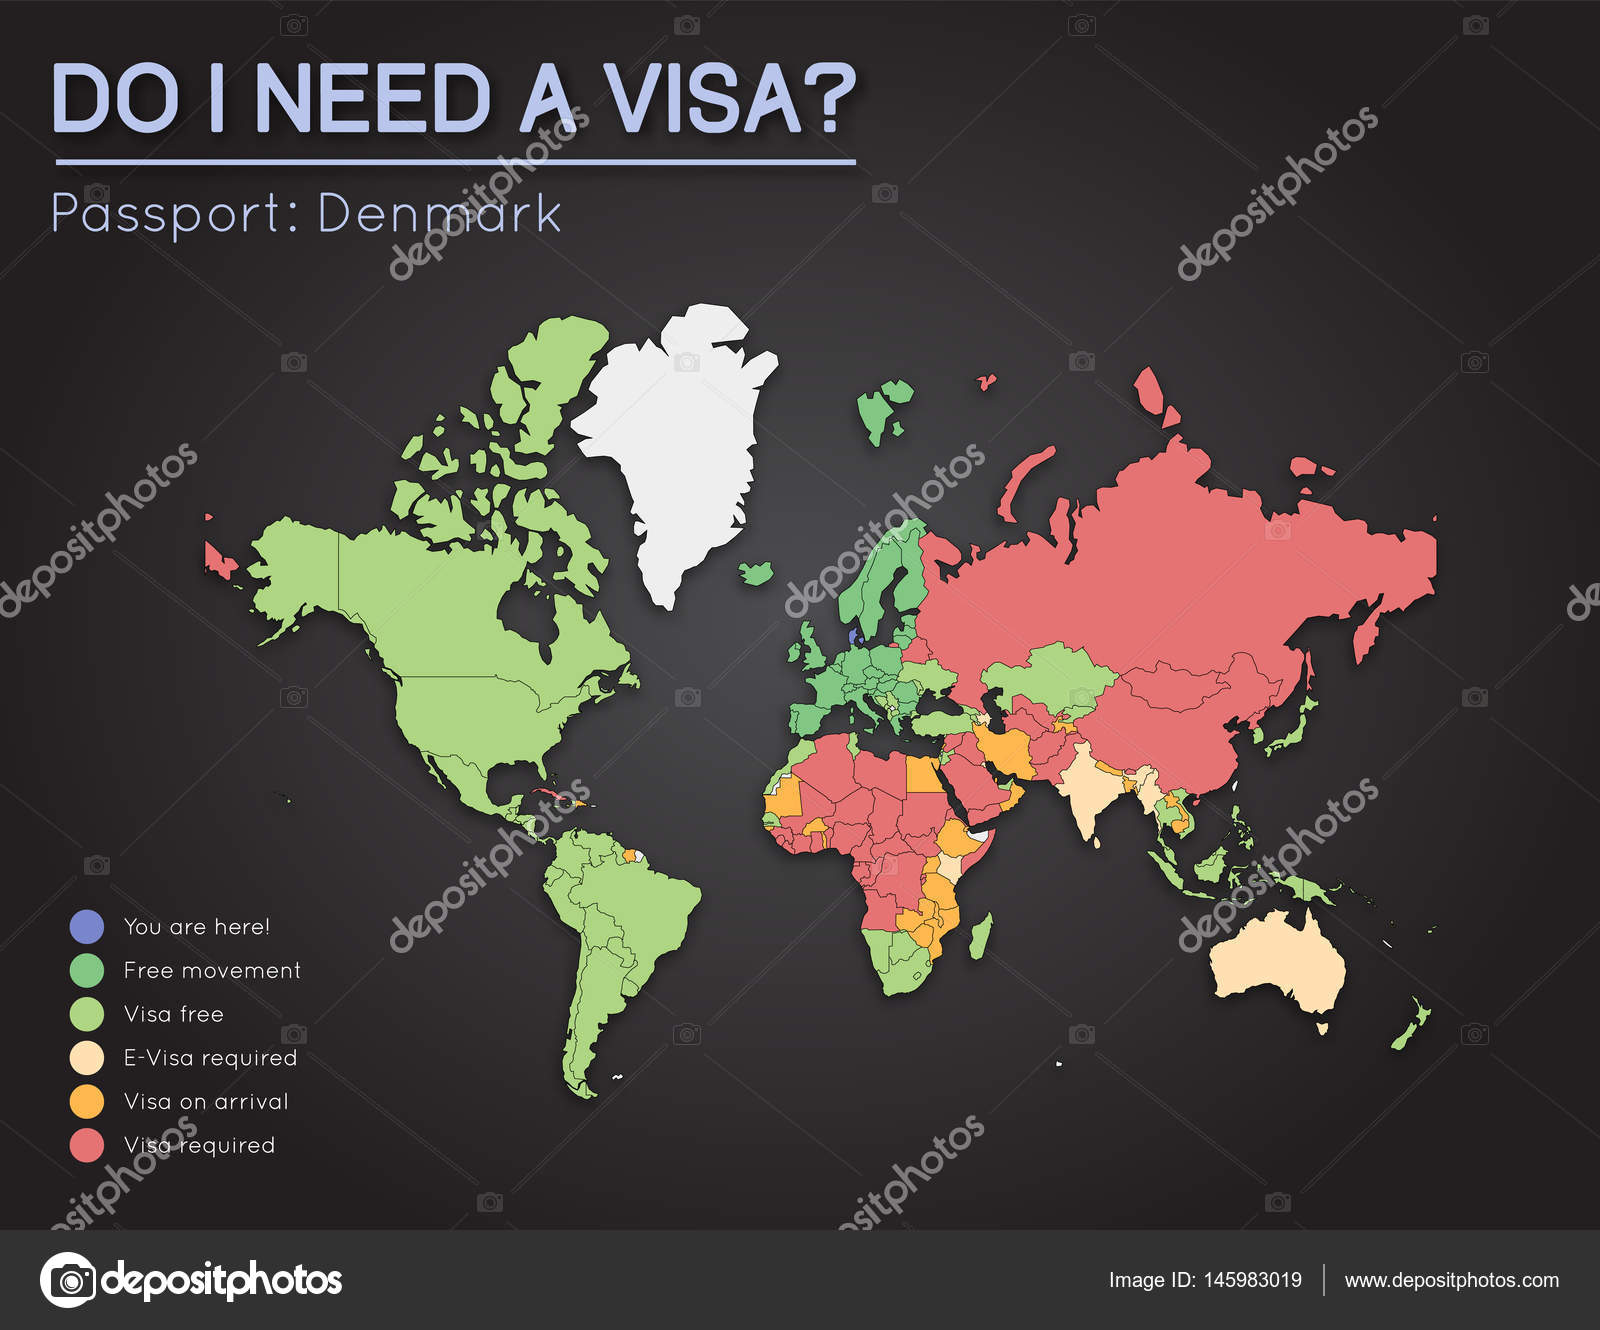 Visas information for kingdom of denmark passport holders year visas information for kingdom of denmark passport holders year 2017 world map infographics showing visa requirements for all countries gumiabroncs Images